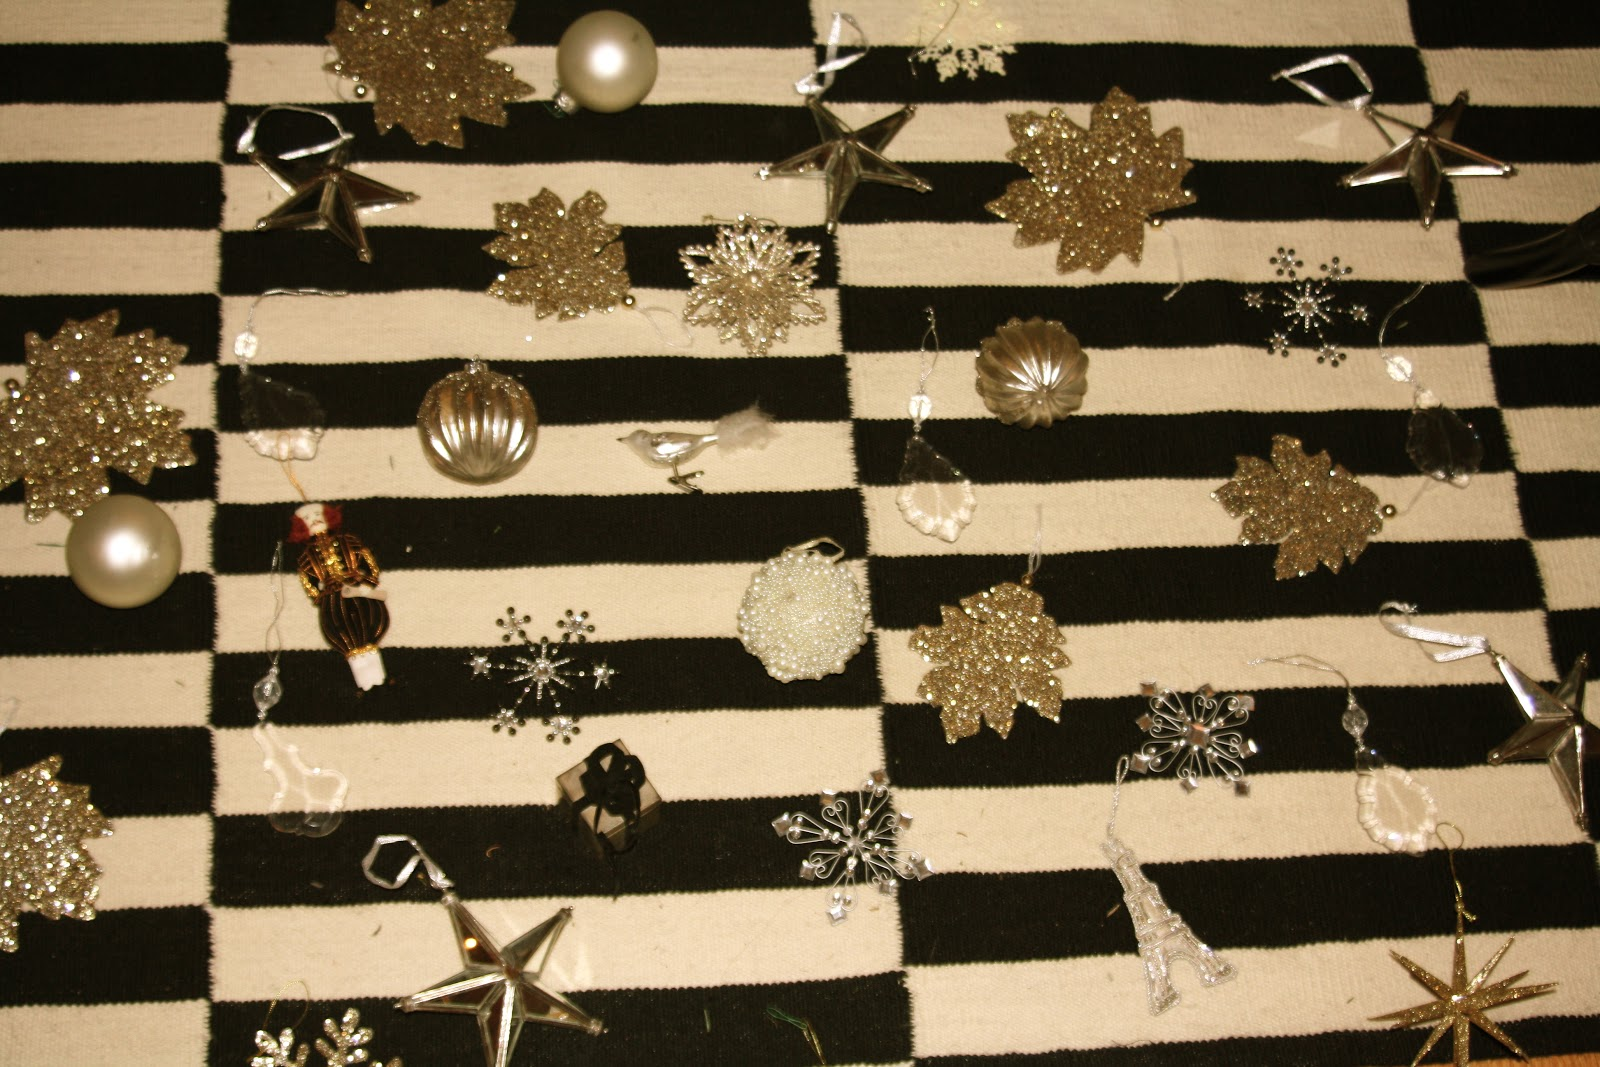 gold, white and silver design scheme for Christmas tree ornaments